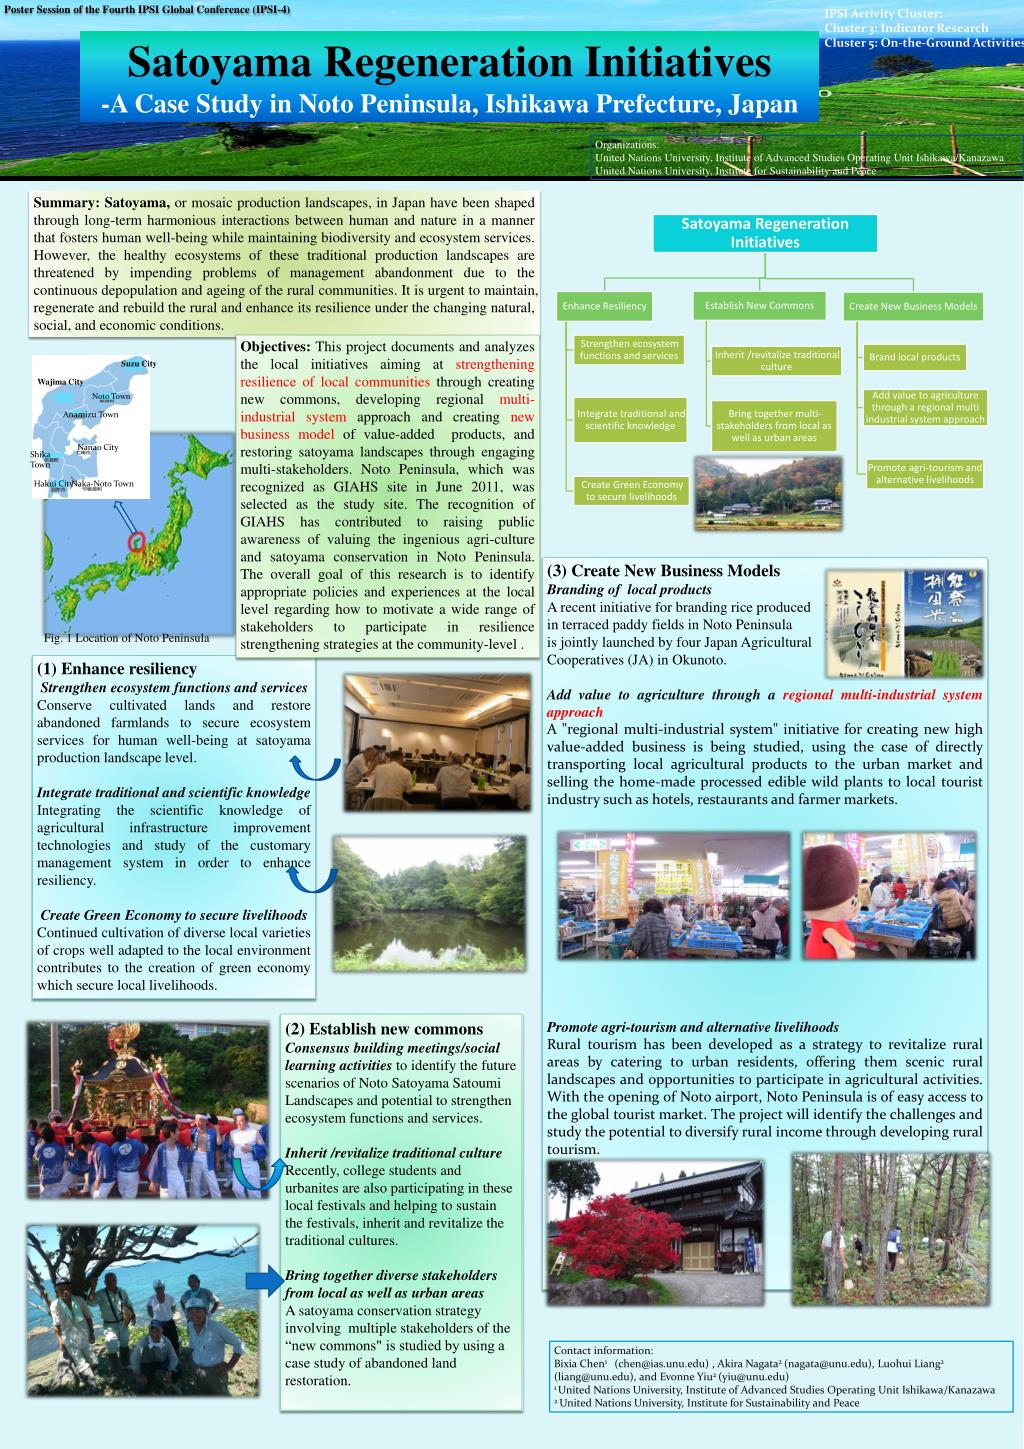 PPT   Poster Session of the Fourth IPSI Global Conference IPSI 9 ...